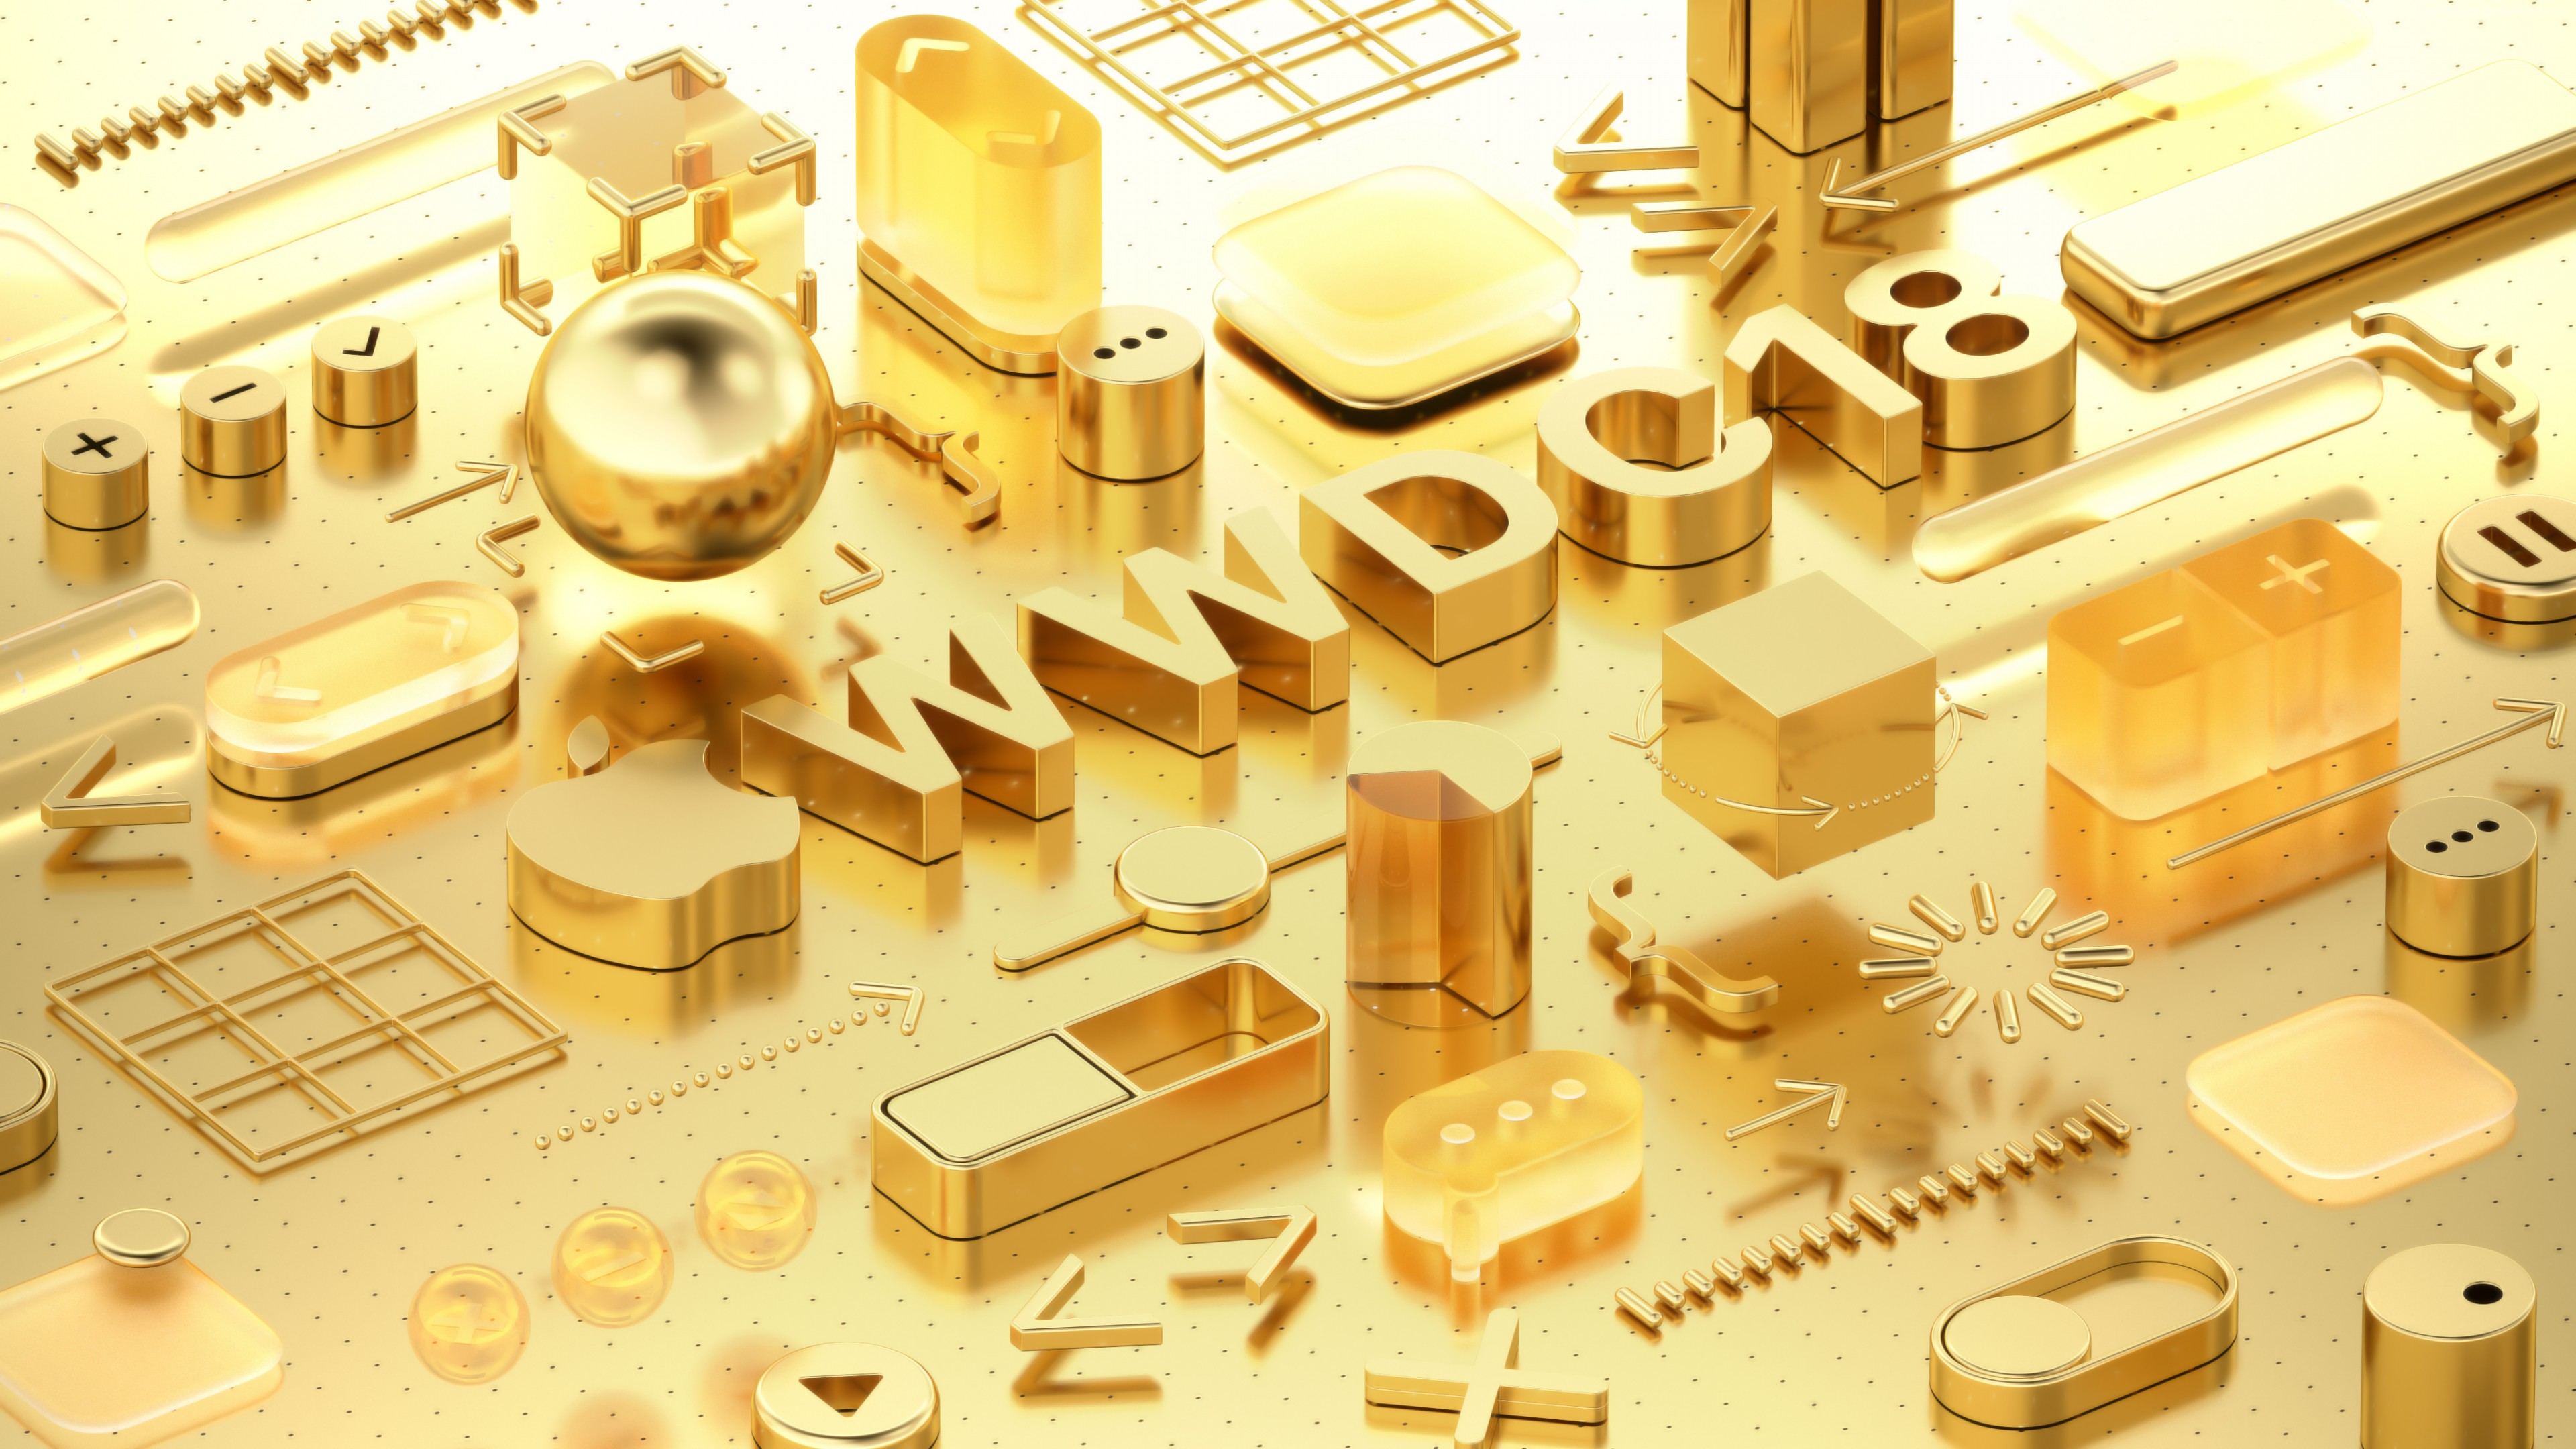 Wallpaper WWDC 2018, Gold, 3D, 4K, Abstract